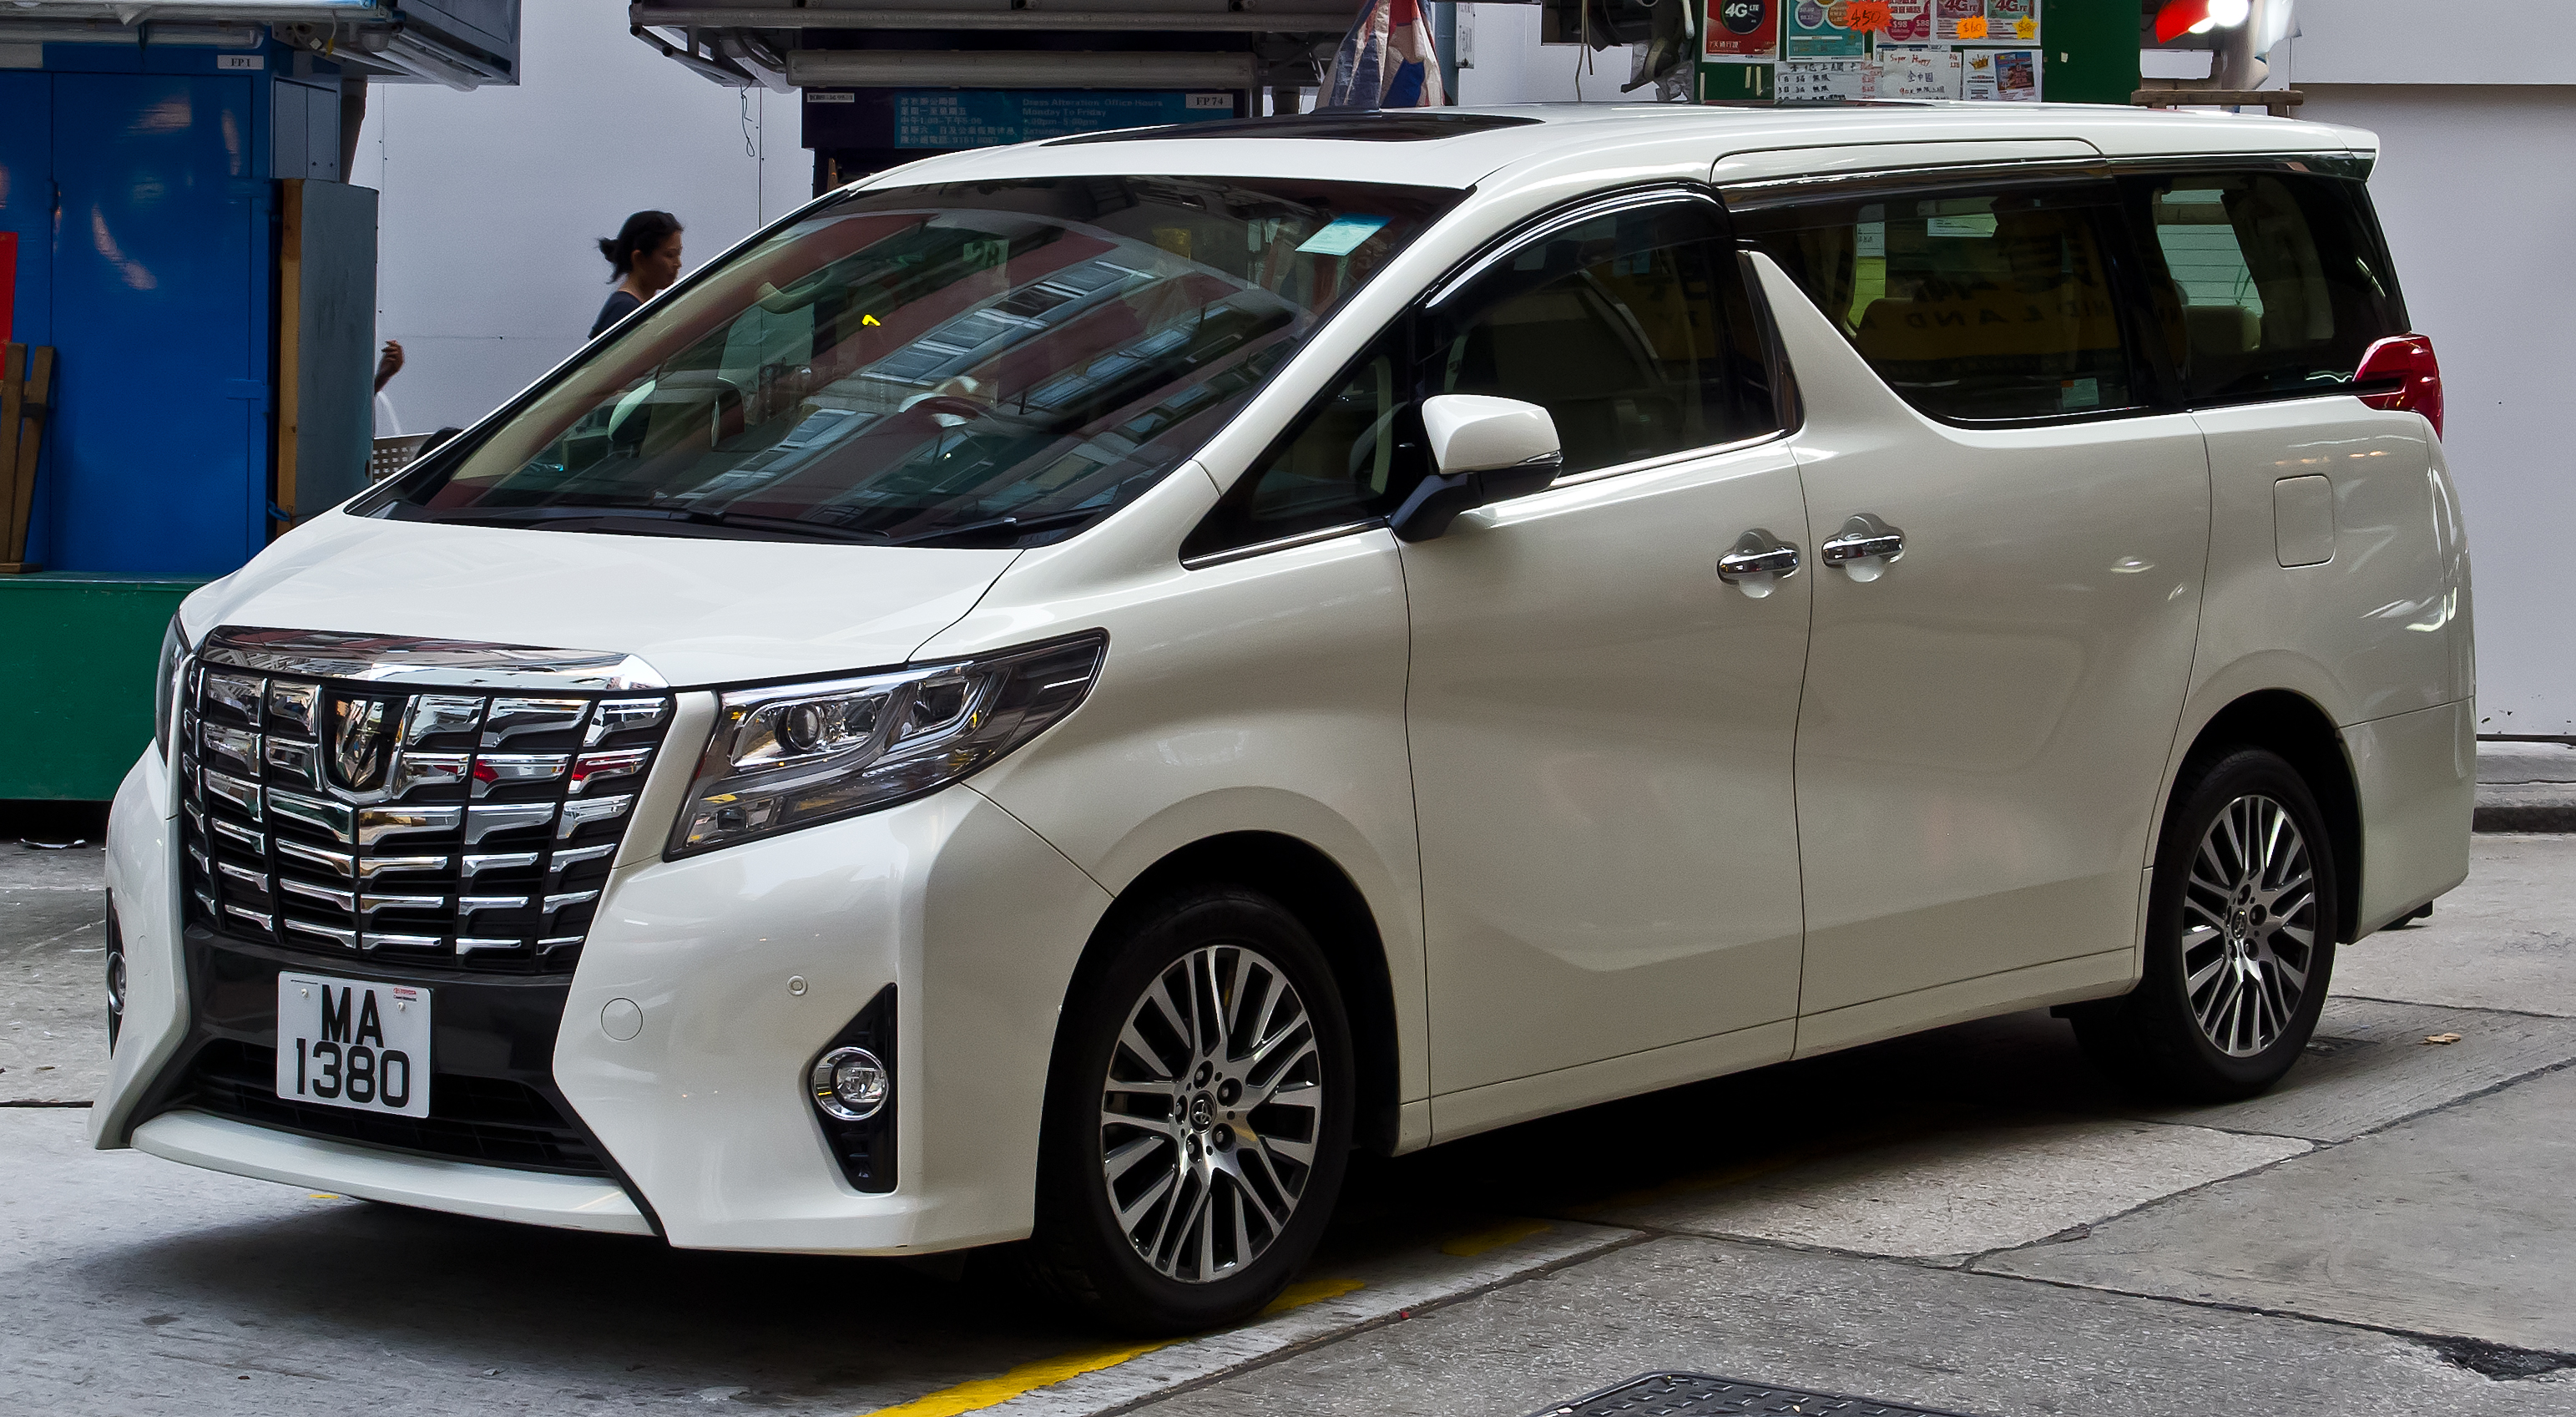 52 All New 2019 Toyota Alphard Prices with 2019 Toyota Alphard